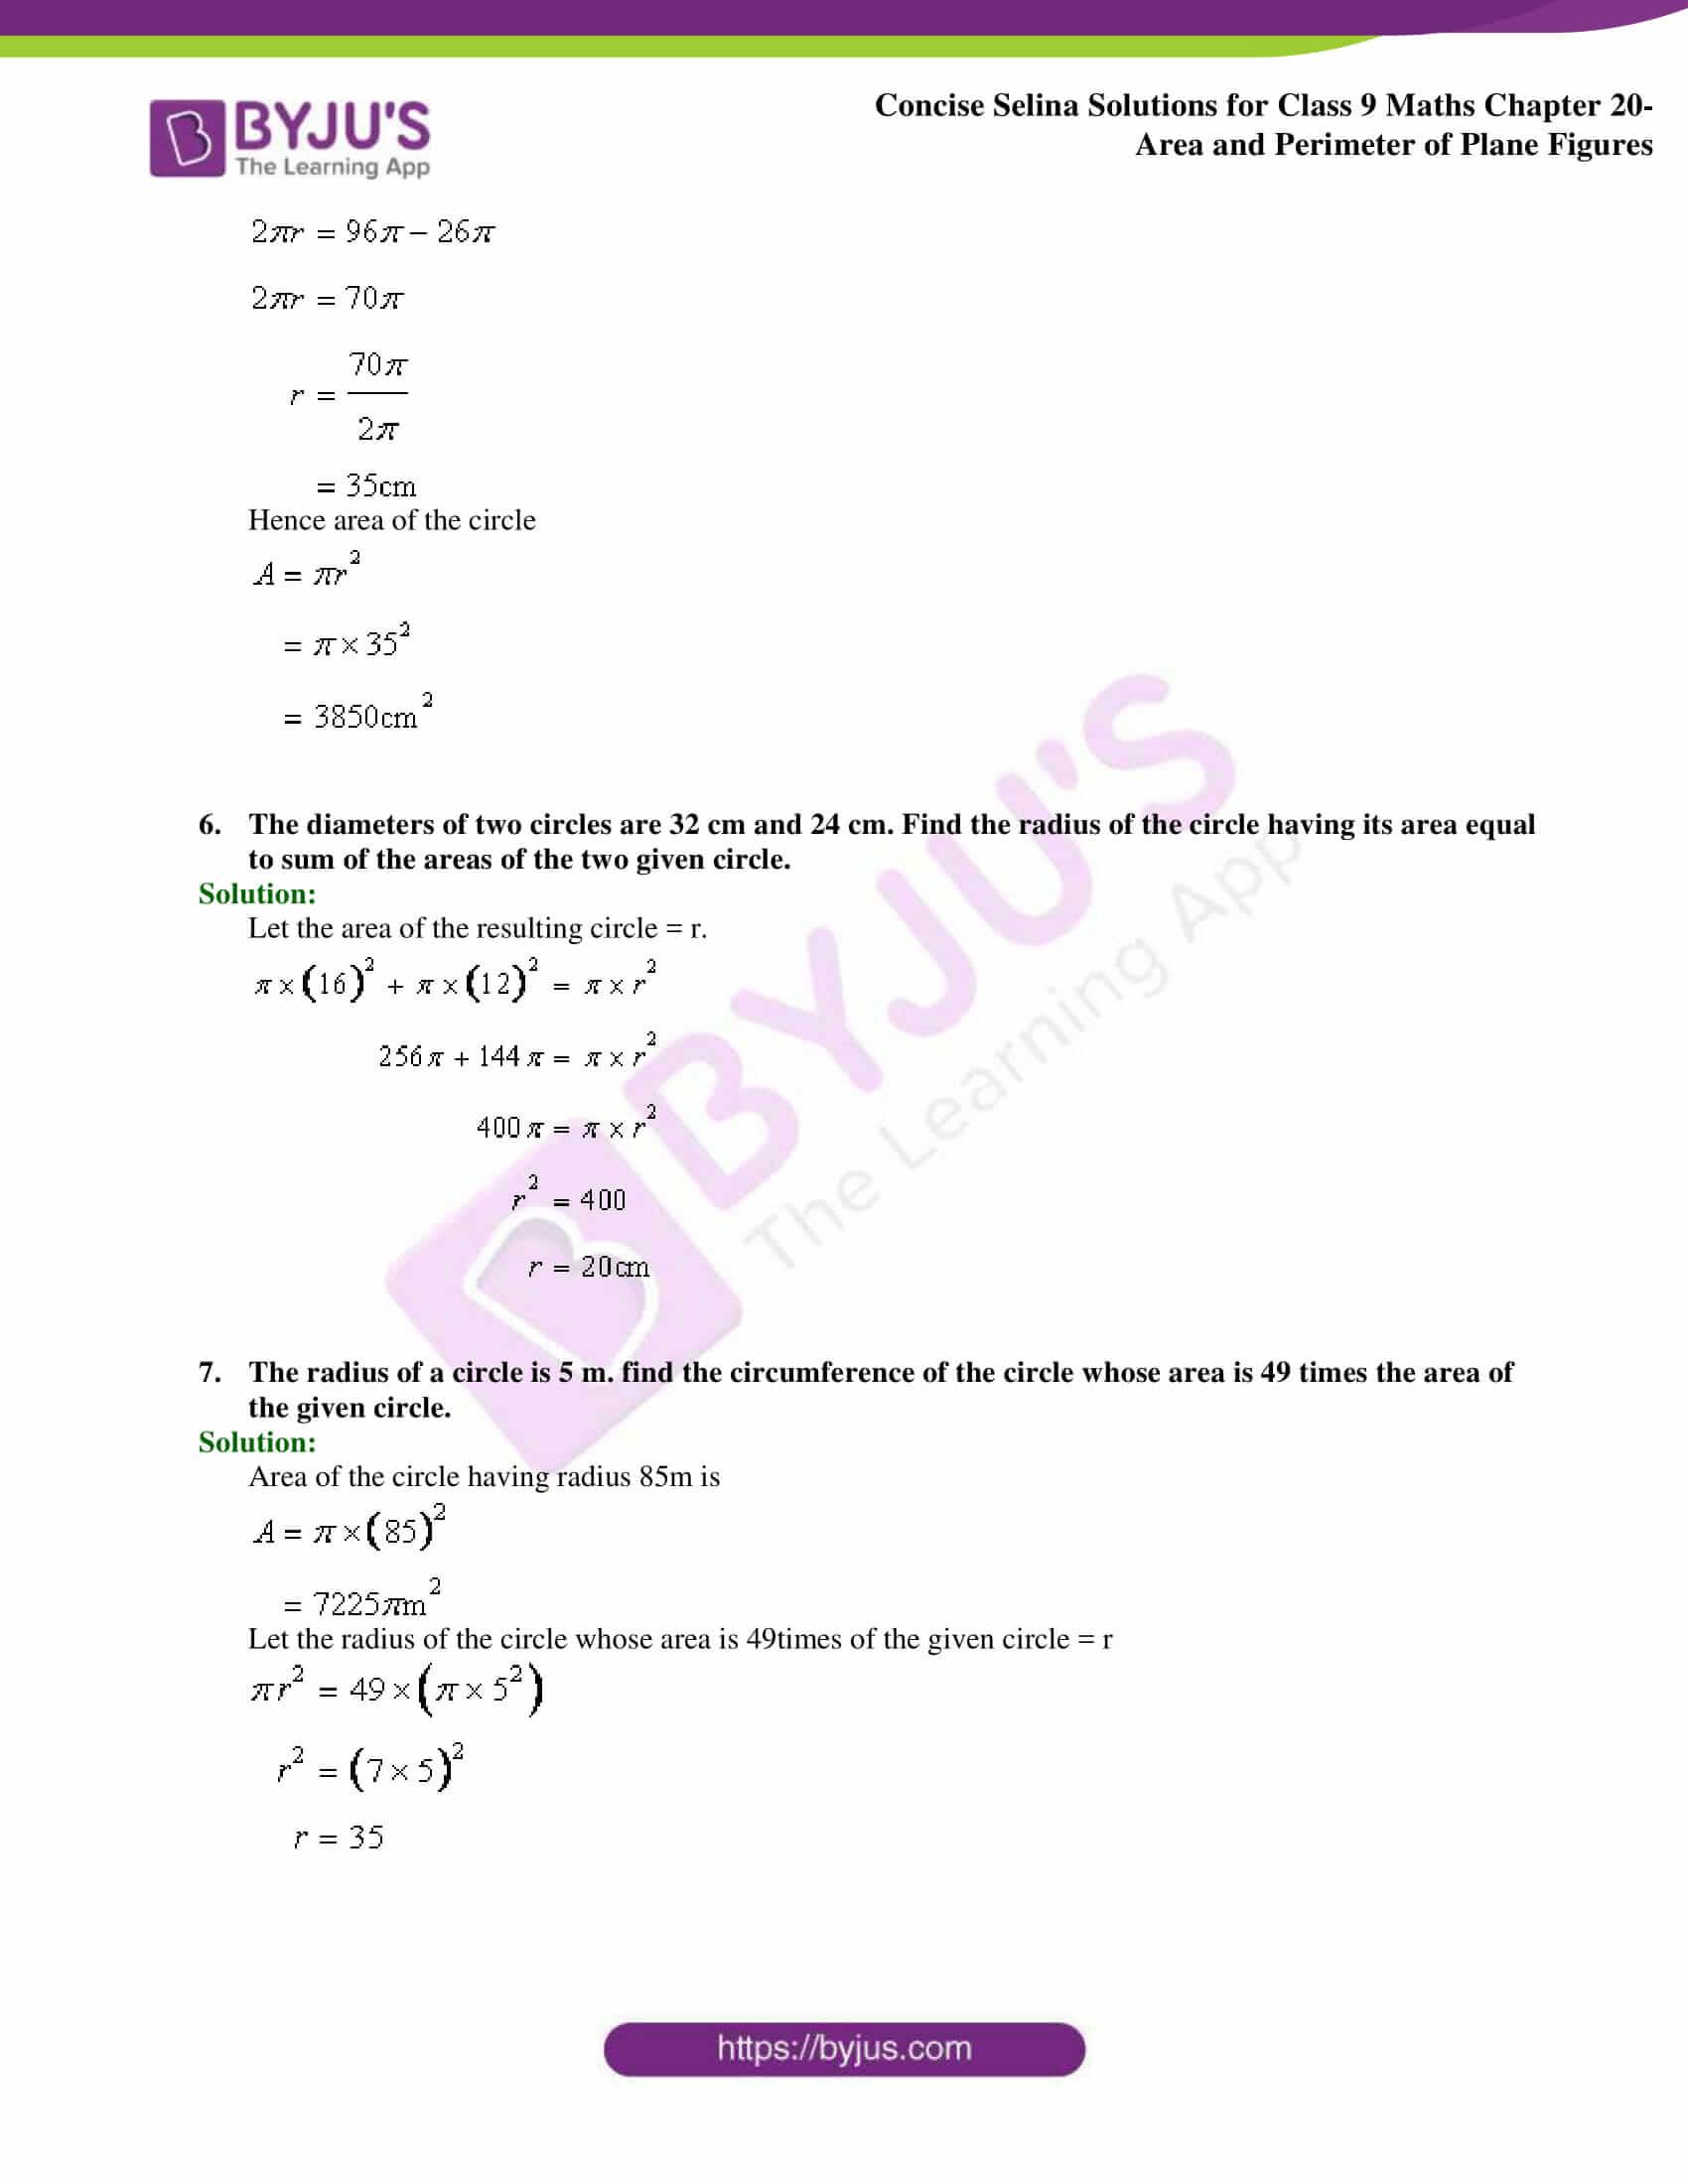 Concise Selina Solutions Class 9 Maths Chapter 20 Area and Perimeter of Plane part 35